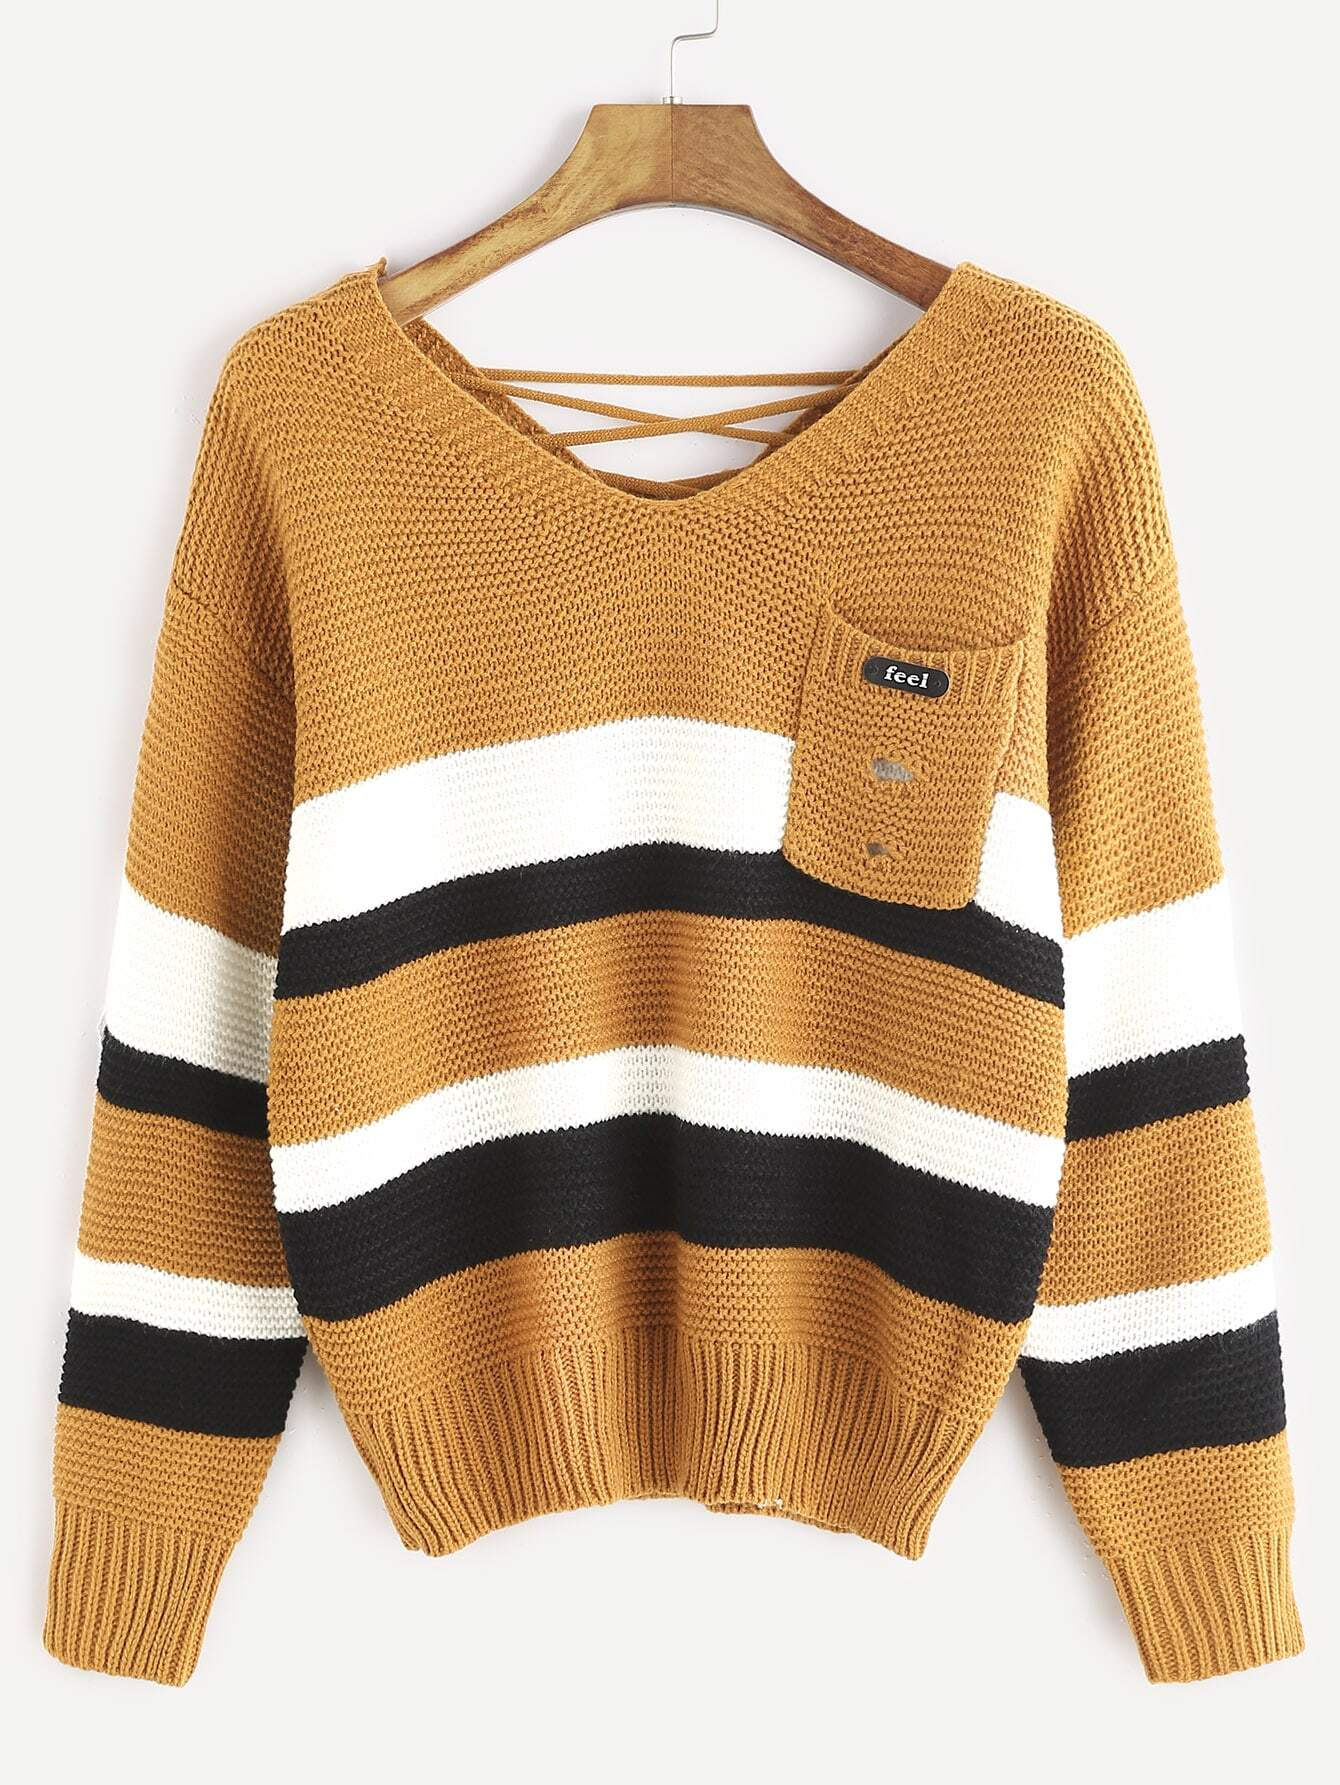 Khaki Double V Neck Lace Up Back Striped Sweater sweater161122004